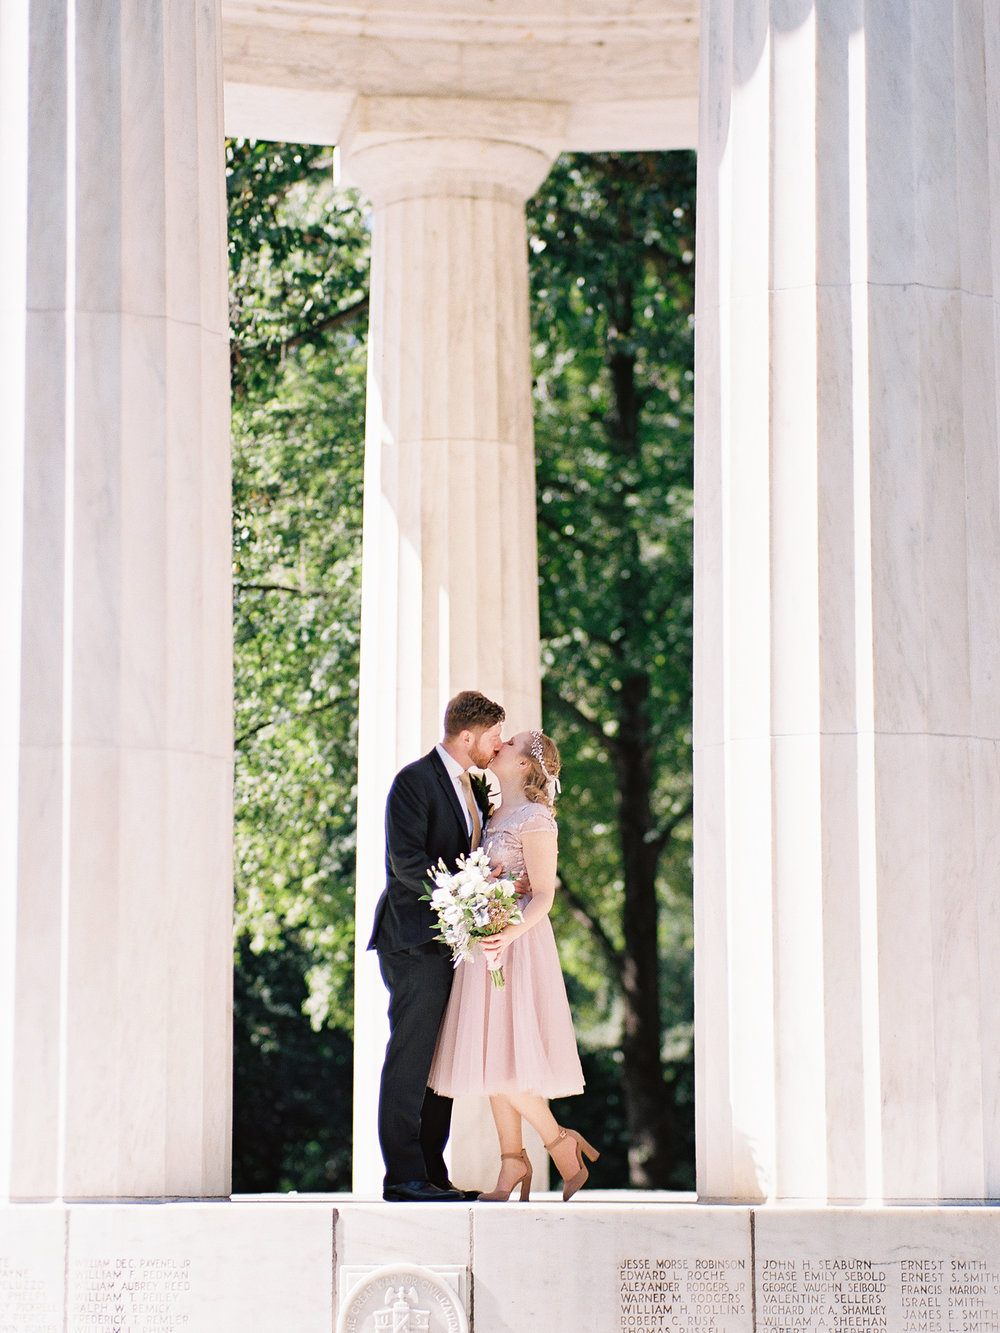 dc_elopement_wedding_photographer_annalaero-4.jpg